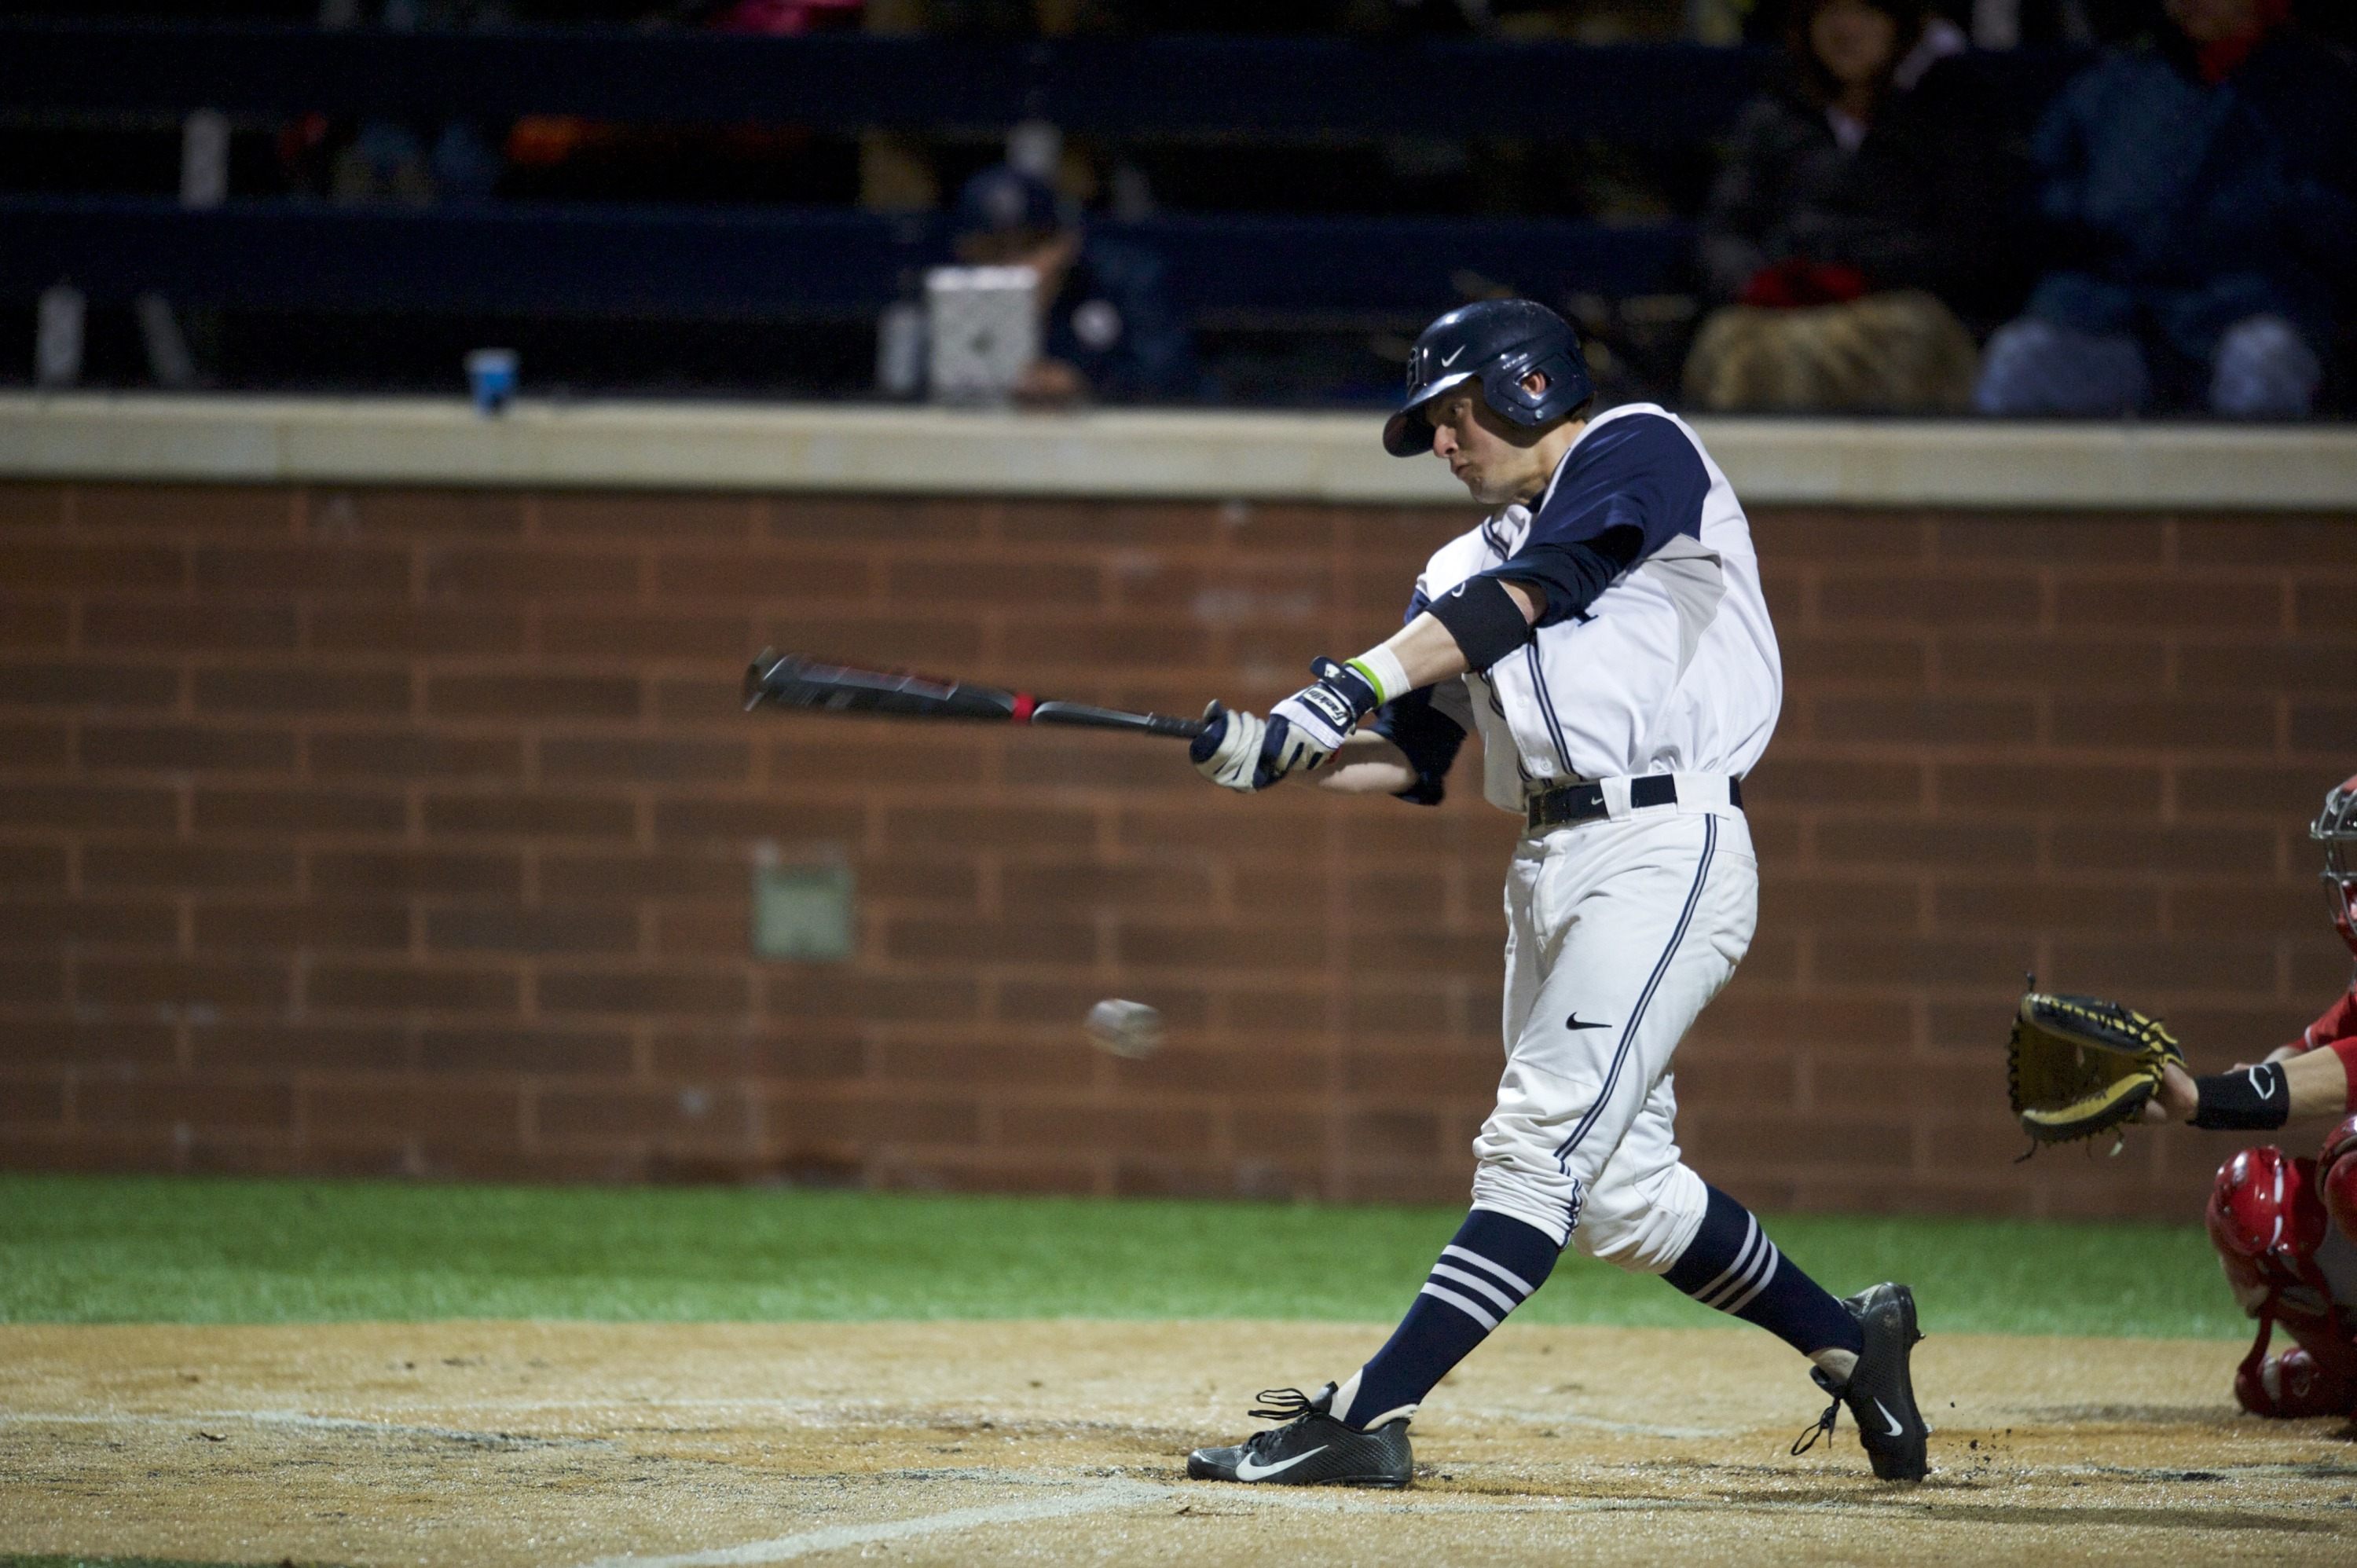 Ryan Busch was on base four times on Friday, scoring two runs.